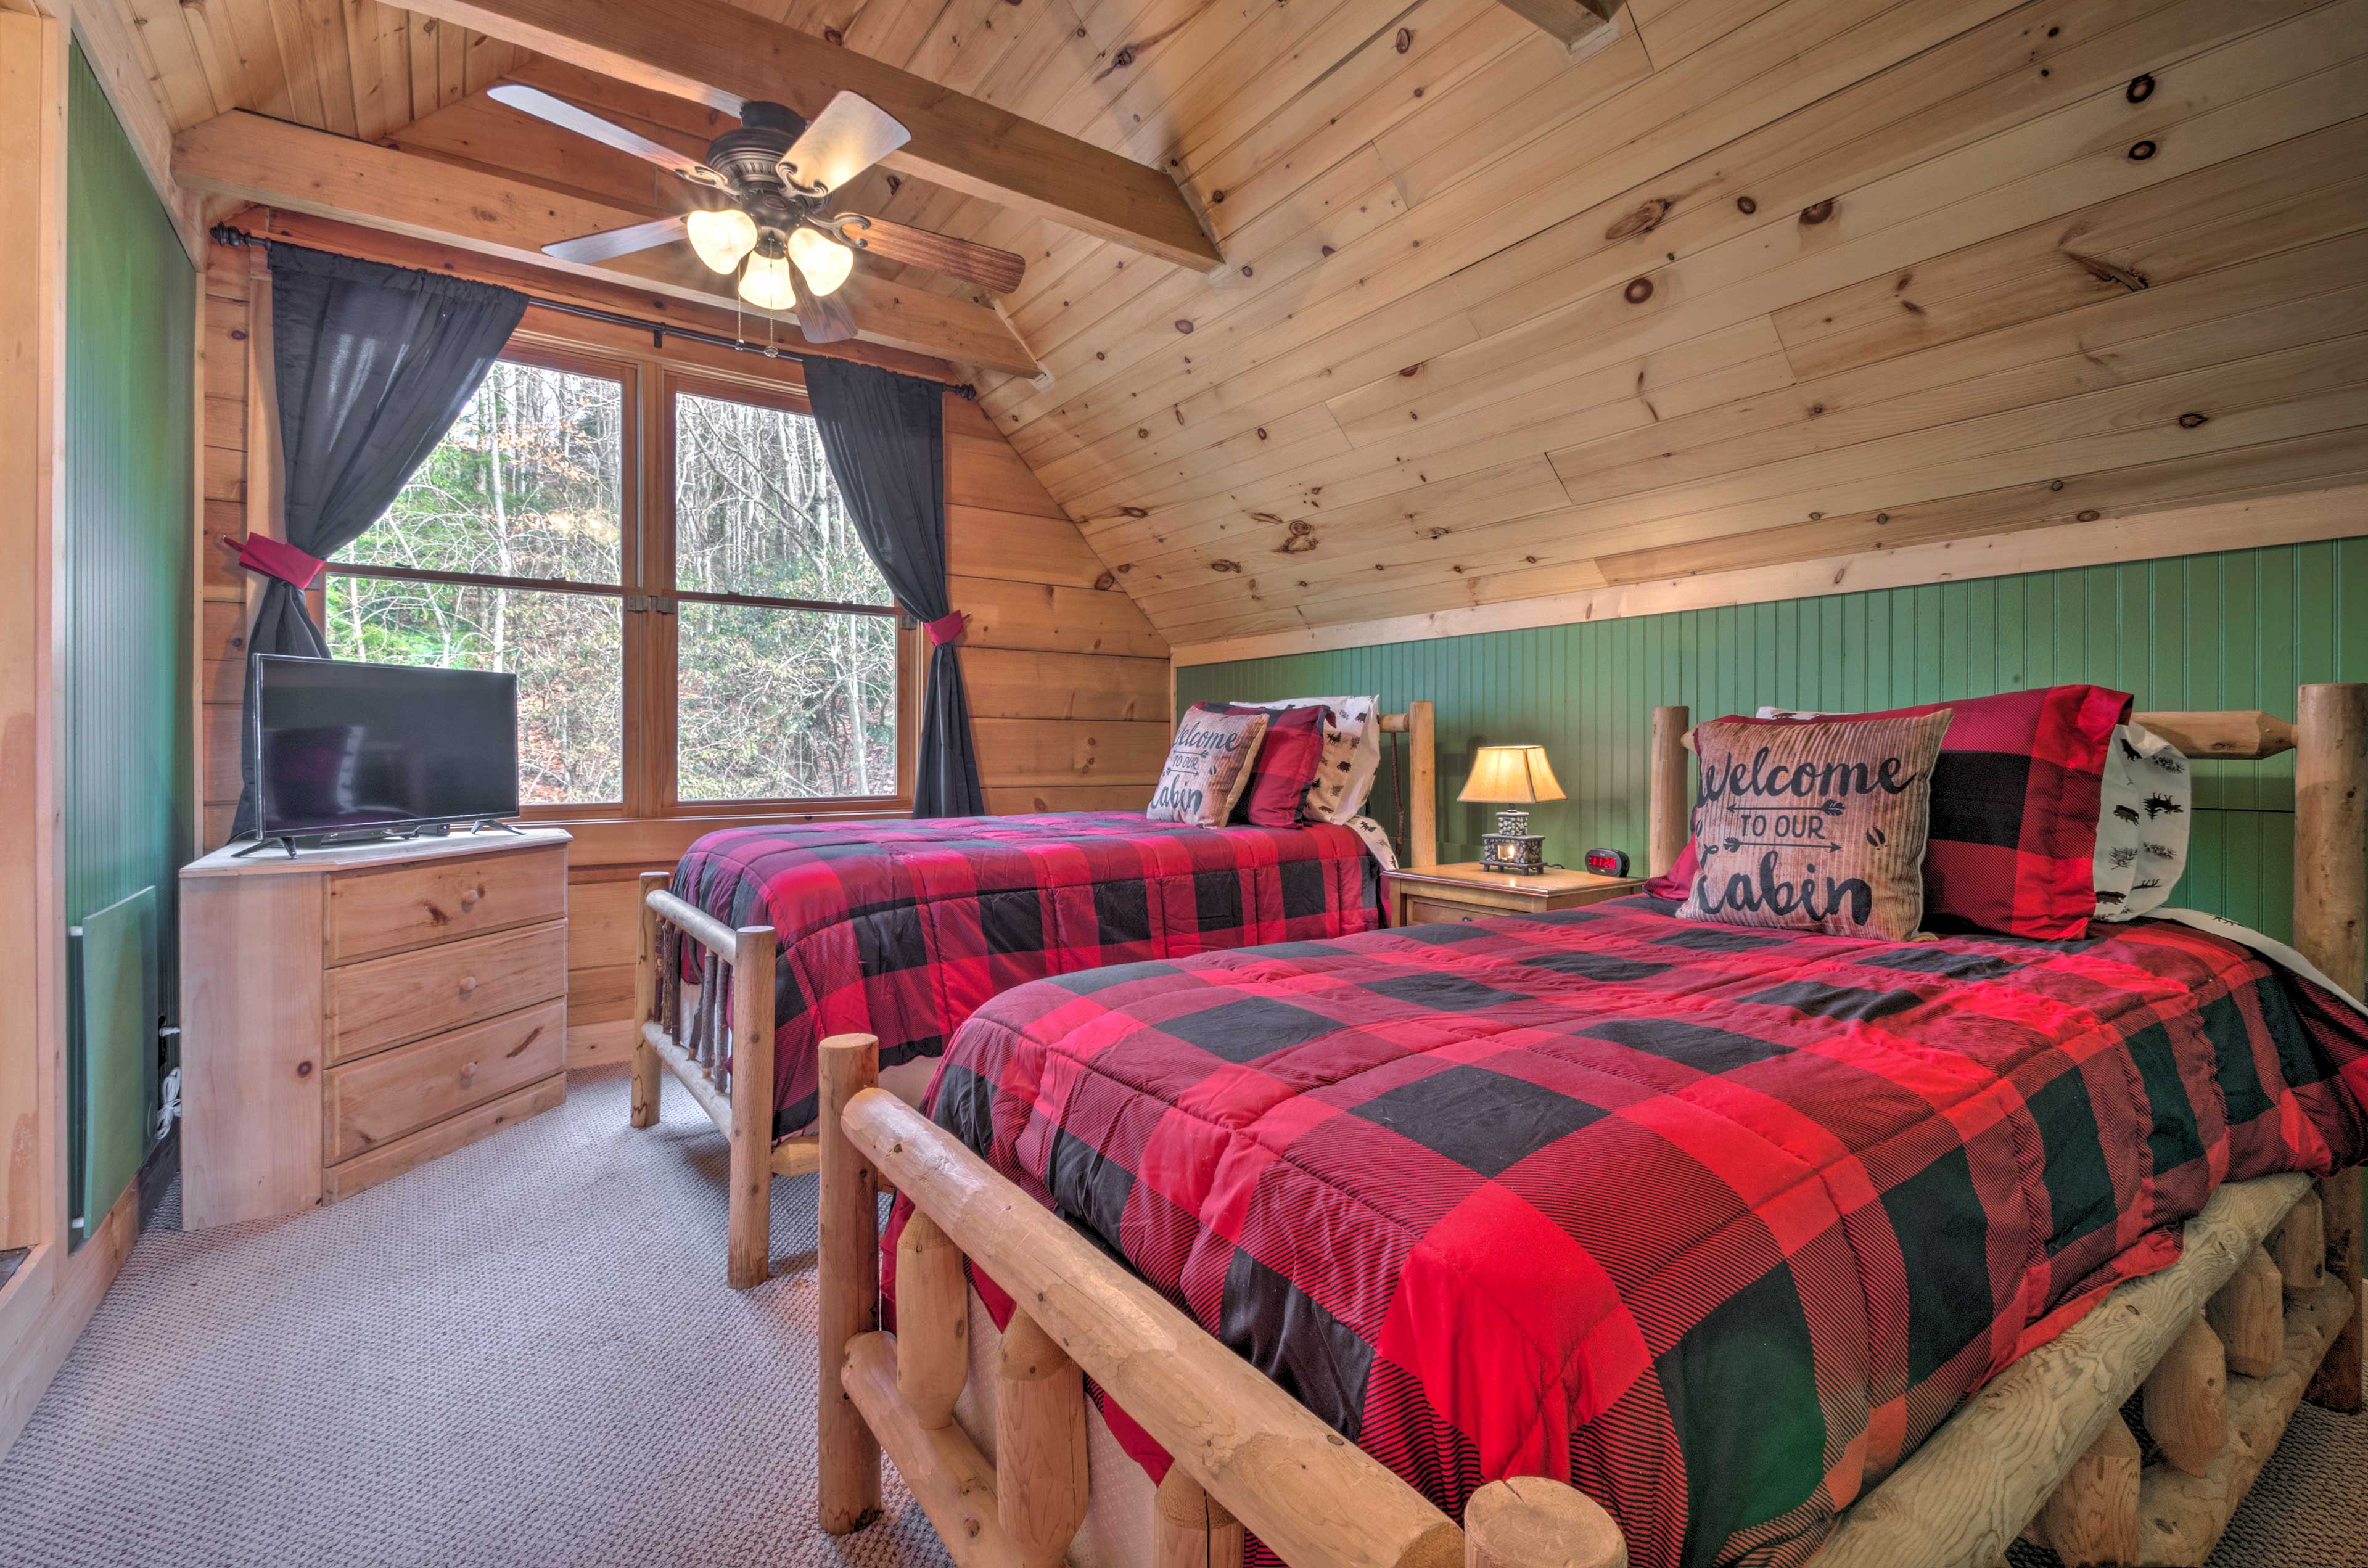 Upstairs, the second bedroom features 2 twin beds.